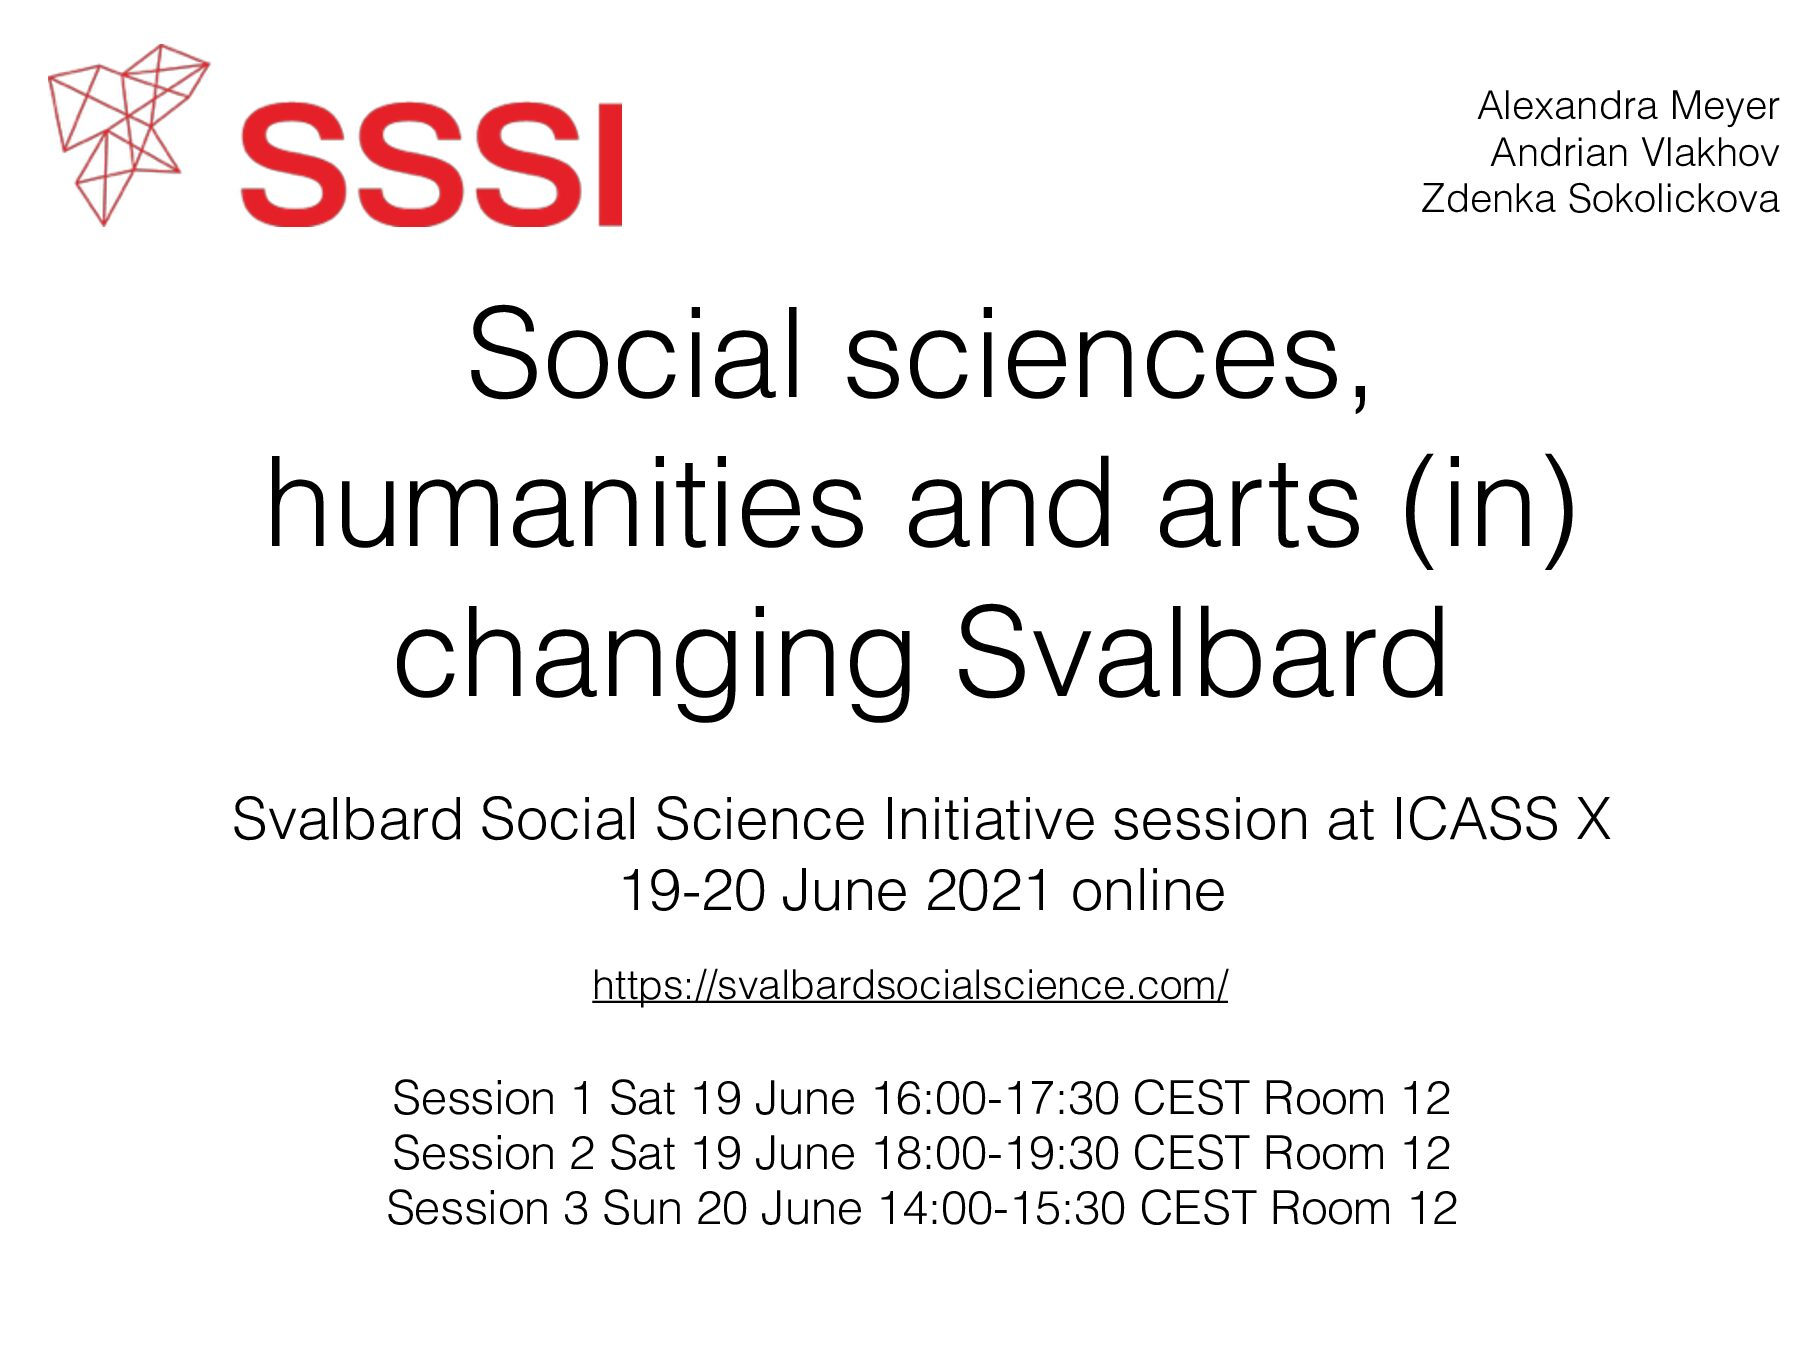 """SSSI Panel about """"Changing Svalbard"""" at the International Congress of Arctic Social Sciences (ICASS X)"""